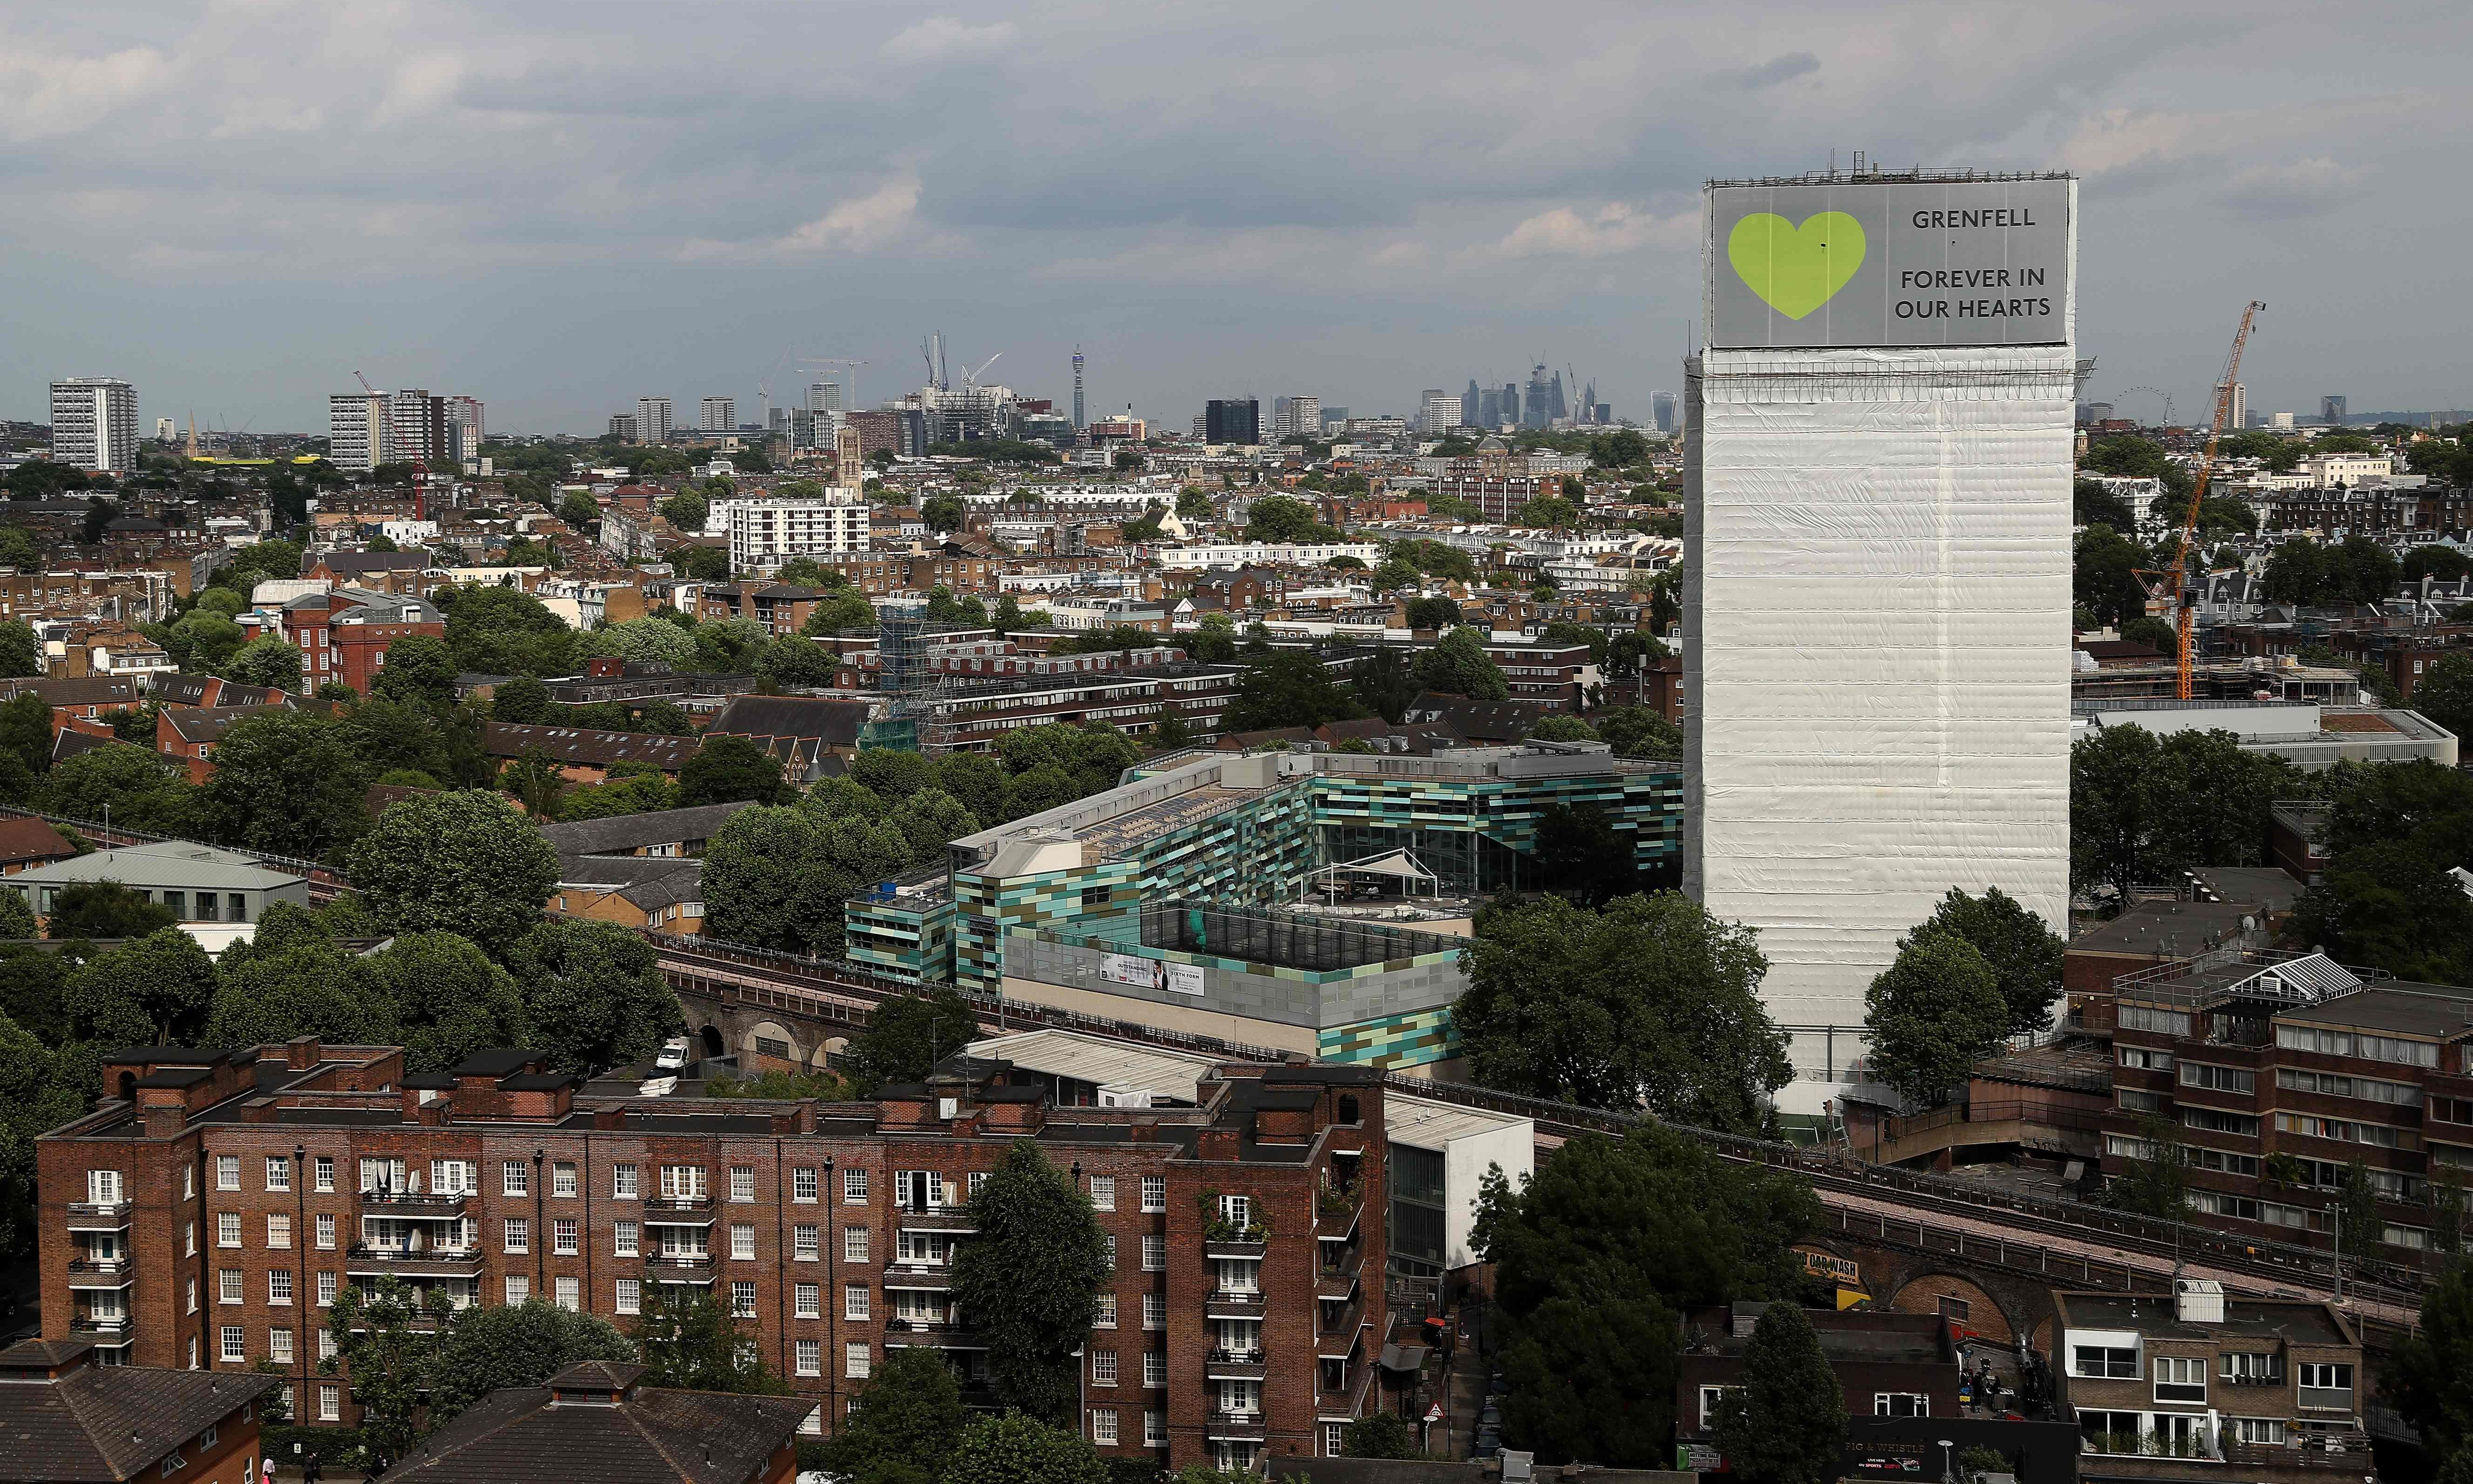 CPS mulls charges over burning effigy of Grenfell Tower